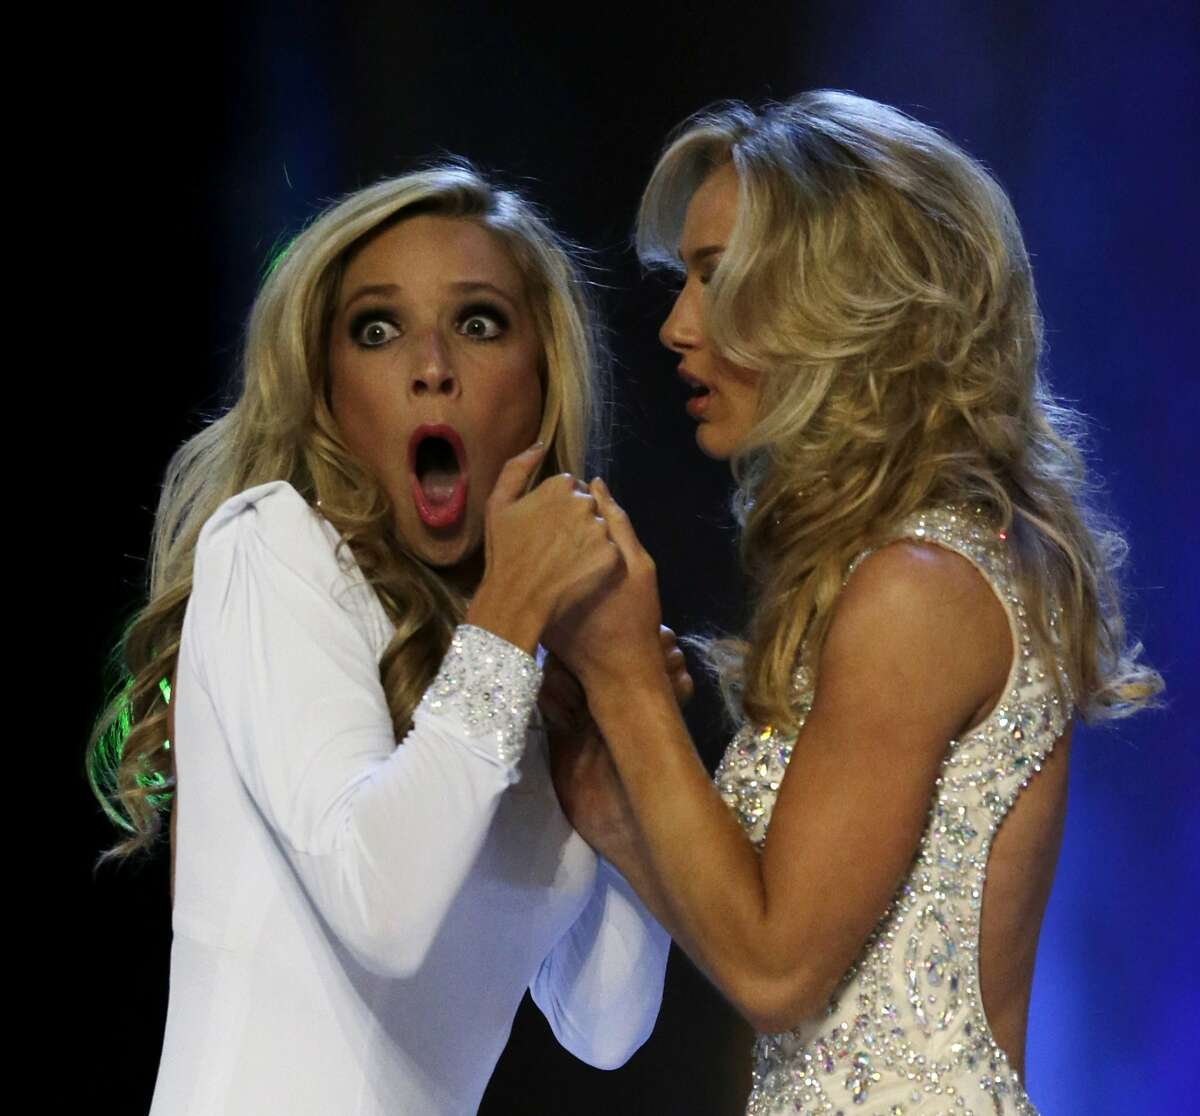 Miss New York Kira Kazantsev, left, gasps after she was named Miss America 2015 as she holds hands with Miss Virginia Courtney Paige Garrett during the Miss America 2015 pageant, Sunday, Sept. 14, 2014, in Atlantic City, N.J. (AP Photo/Julio Cortez)